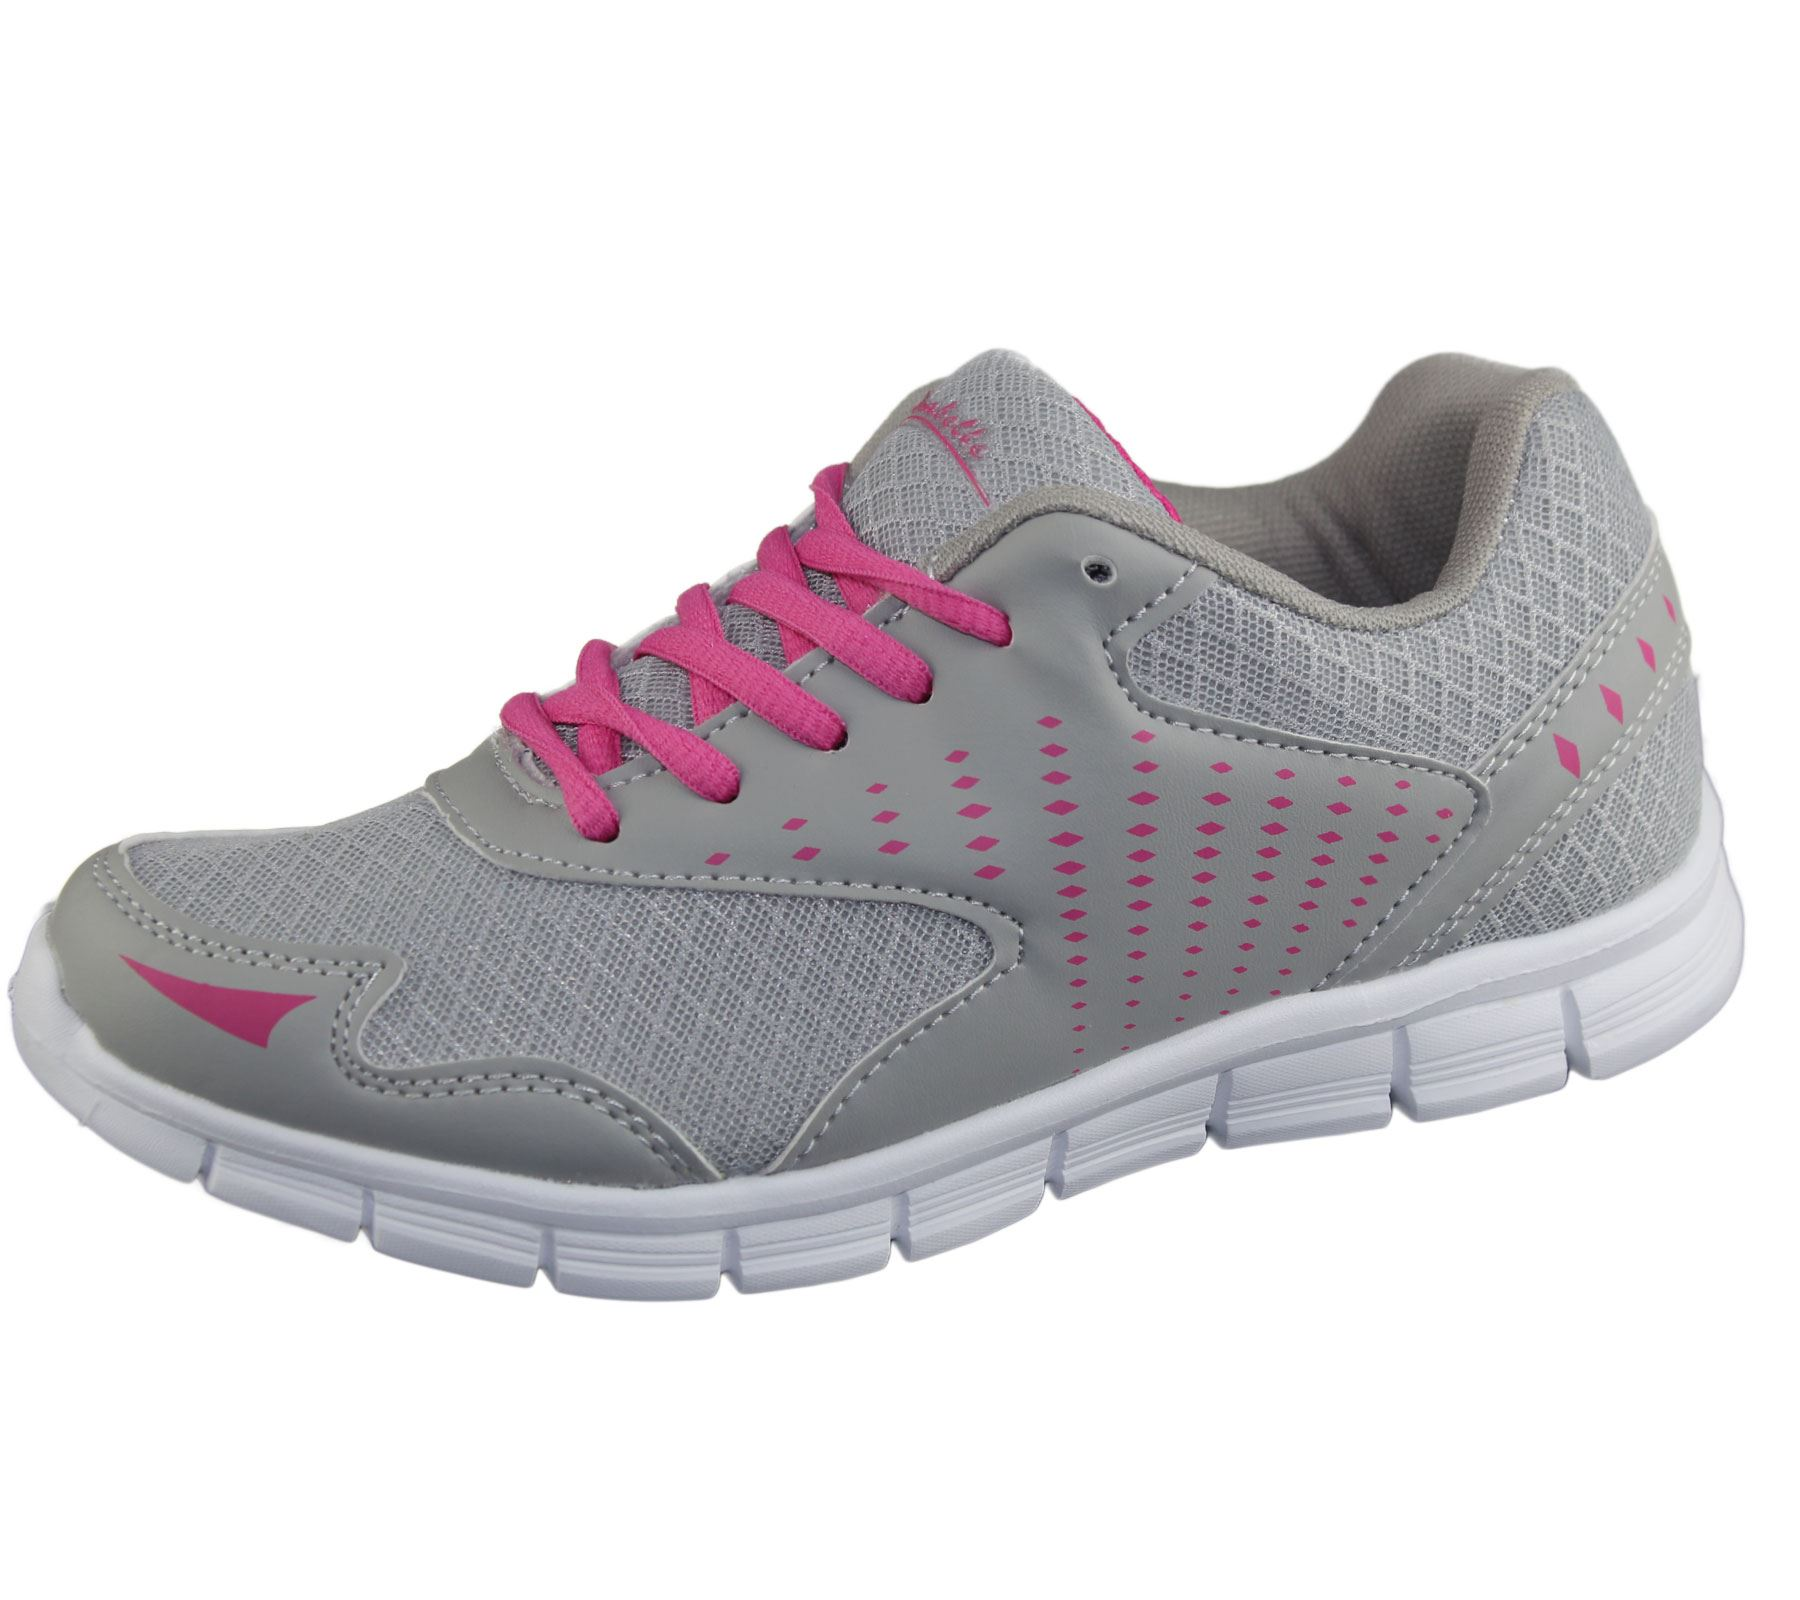 Womens Running Shoes Ladies Sports Walking Jogging Gym ...